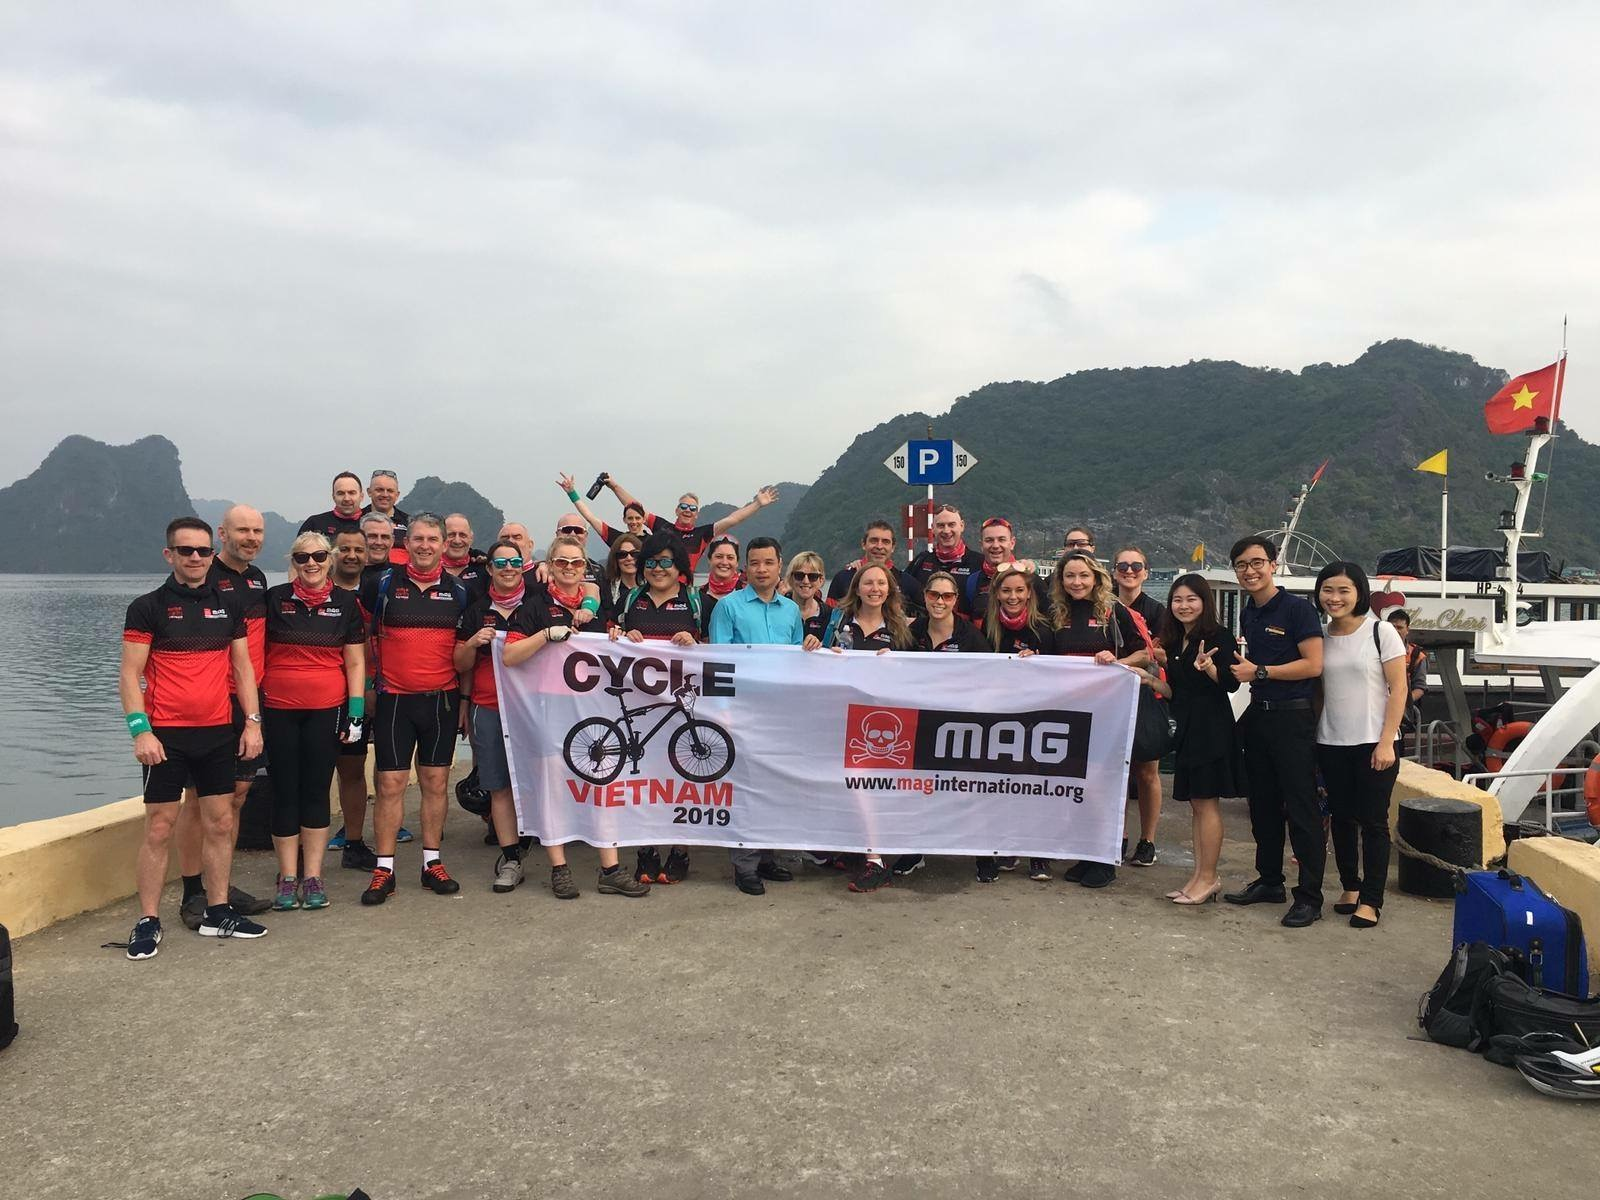 MAG impulse and convenience charity cycle in Vietnam